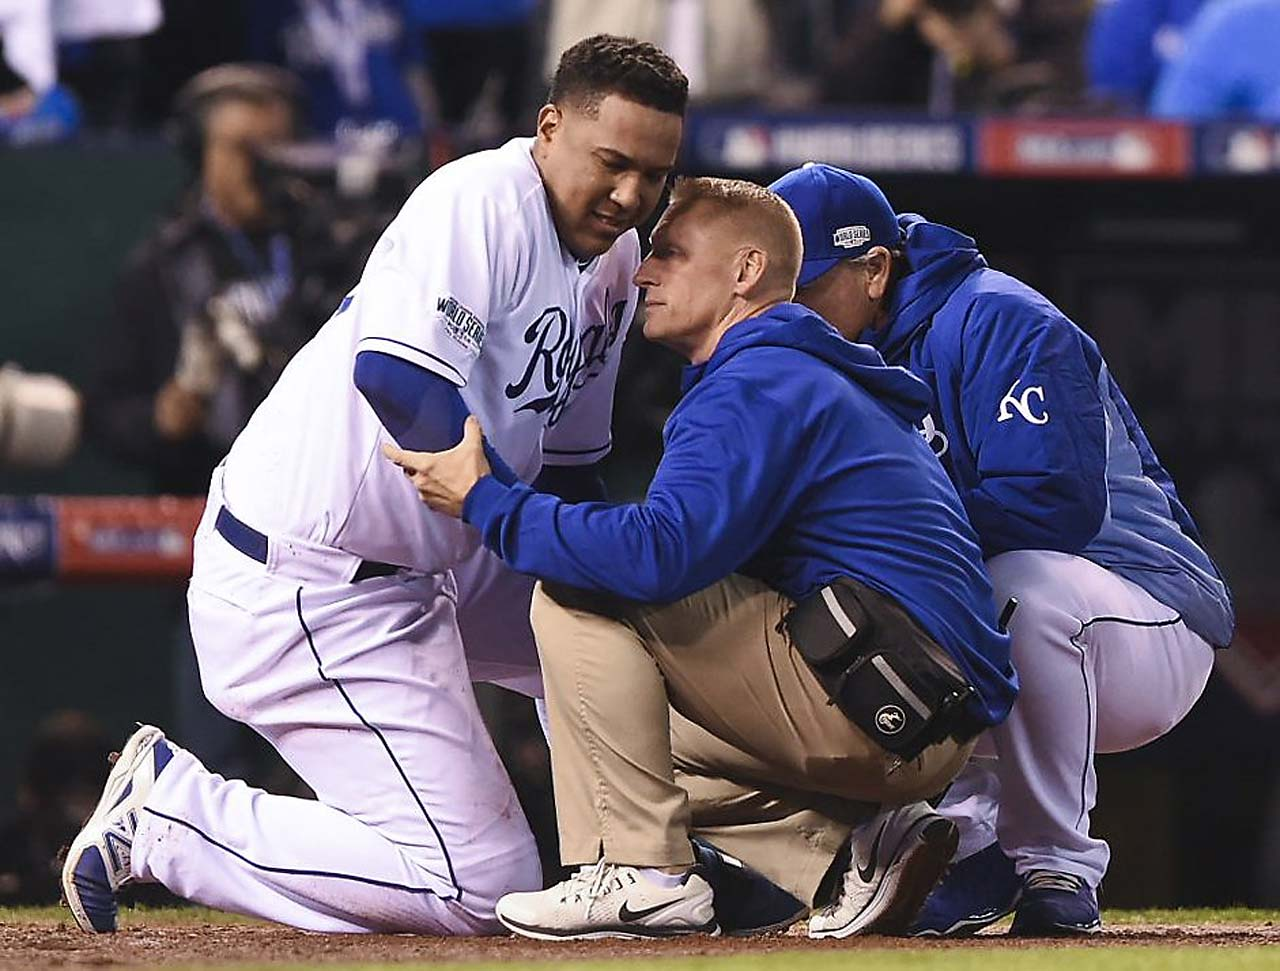 The Royals weren't immediately sure if their veteran catcher would be able to stay in the game.